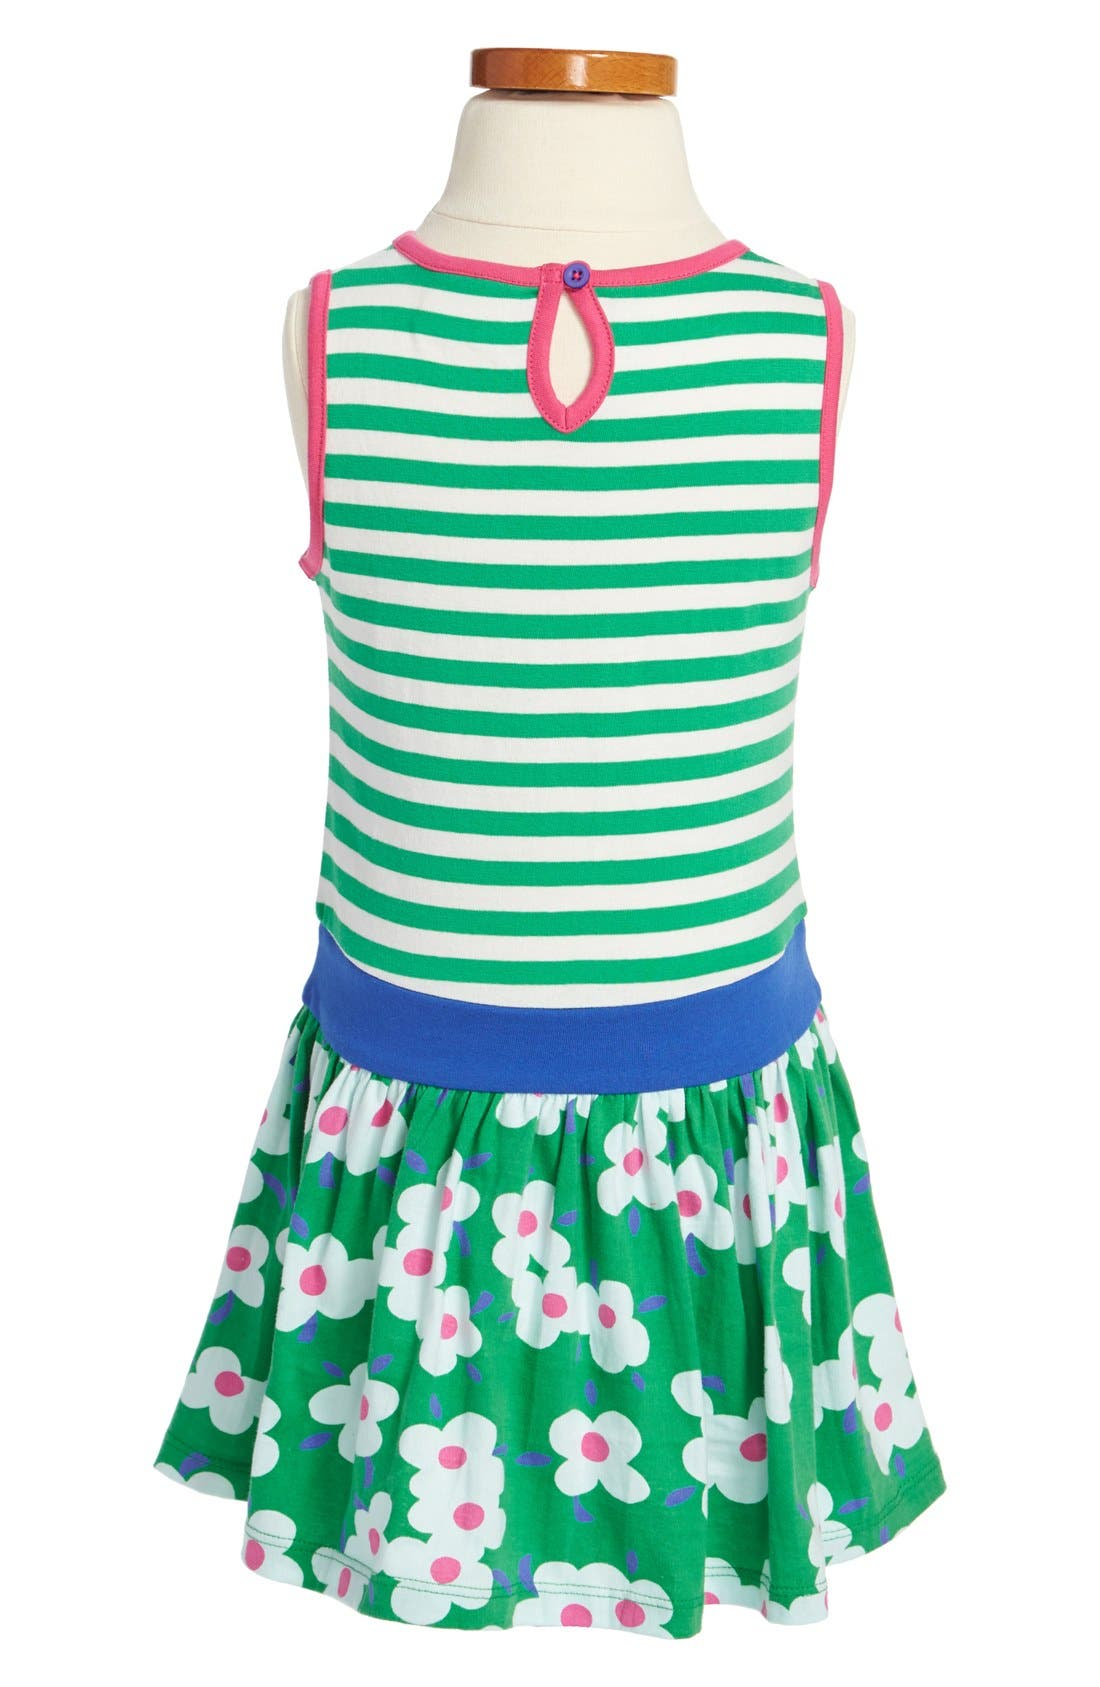 Alternate Image 2  - Mini Boden 'Jolly' Cotton Jersey Dress (Little Girls & Big Girls)